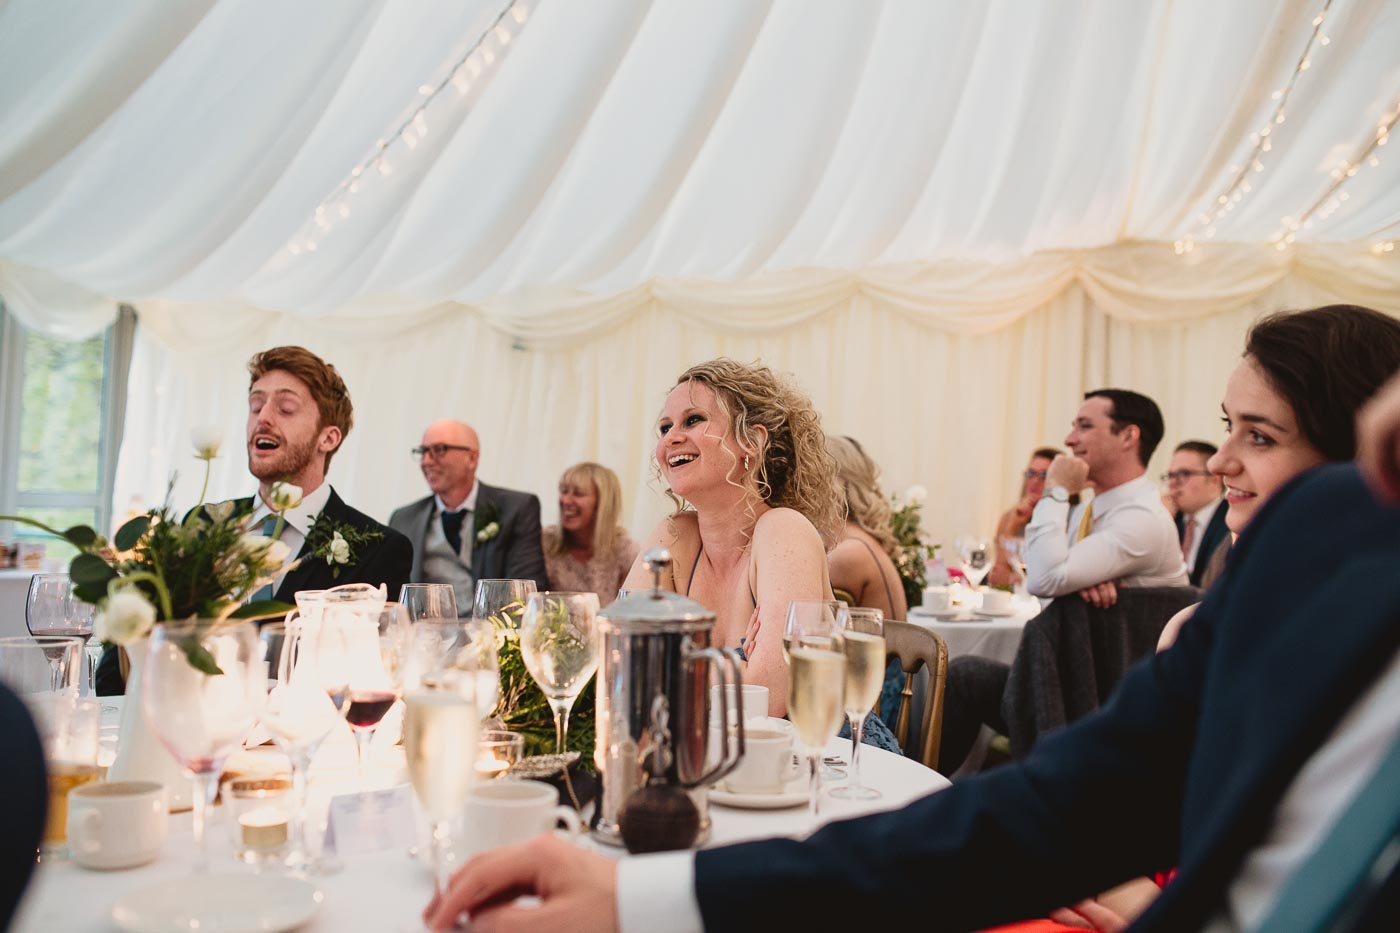 One of the wedding guests laughing at the speeches, Inn at Whitewell wedding venue